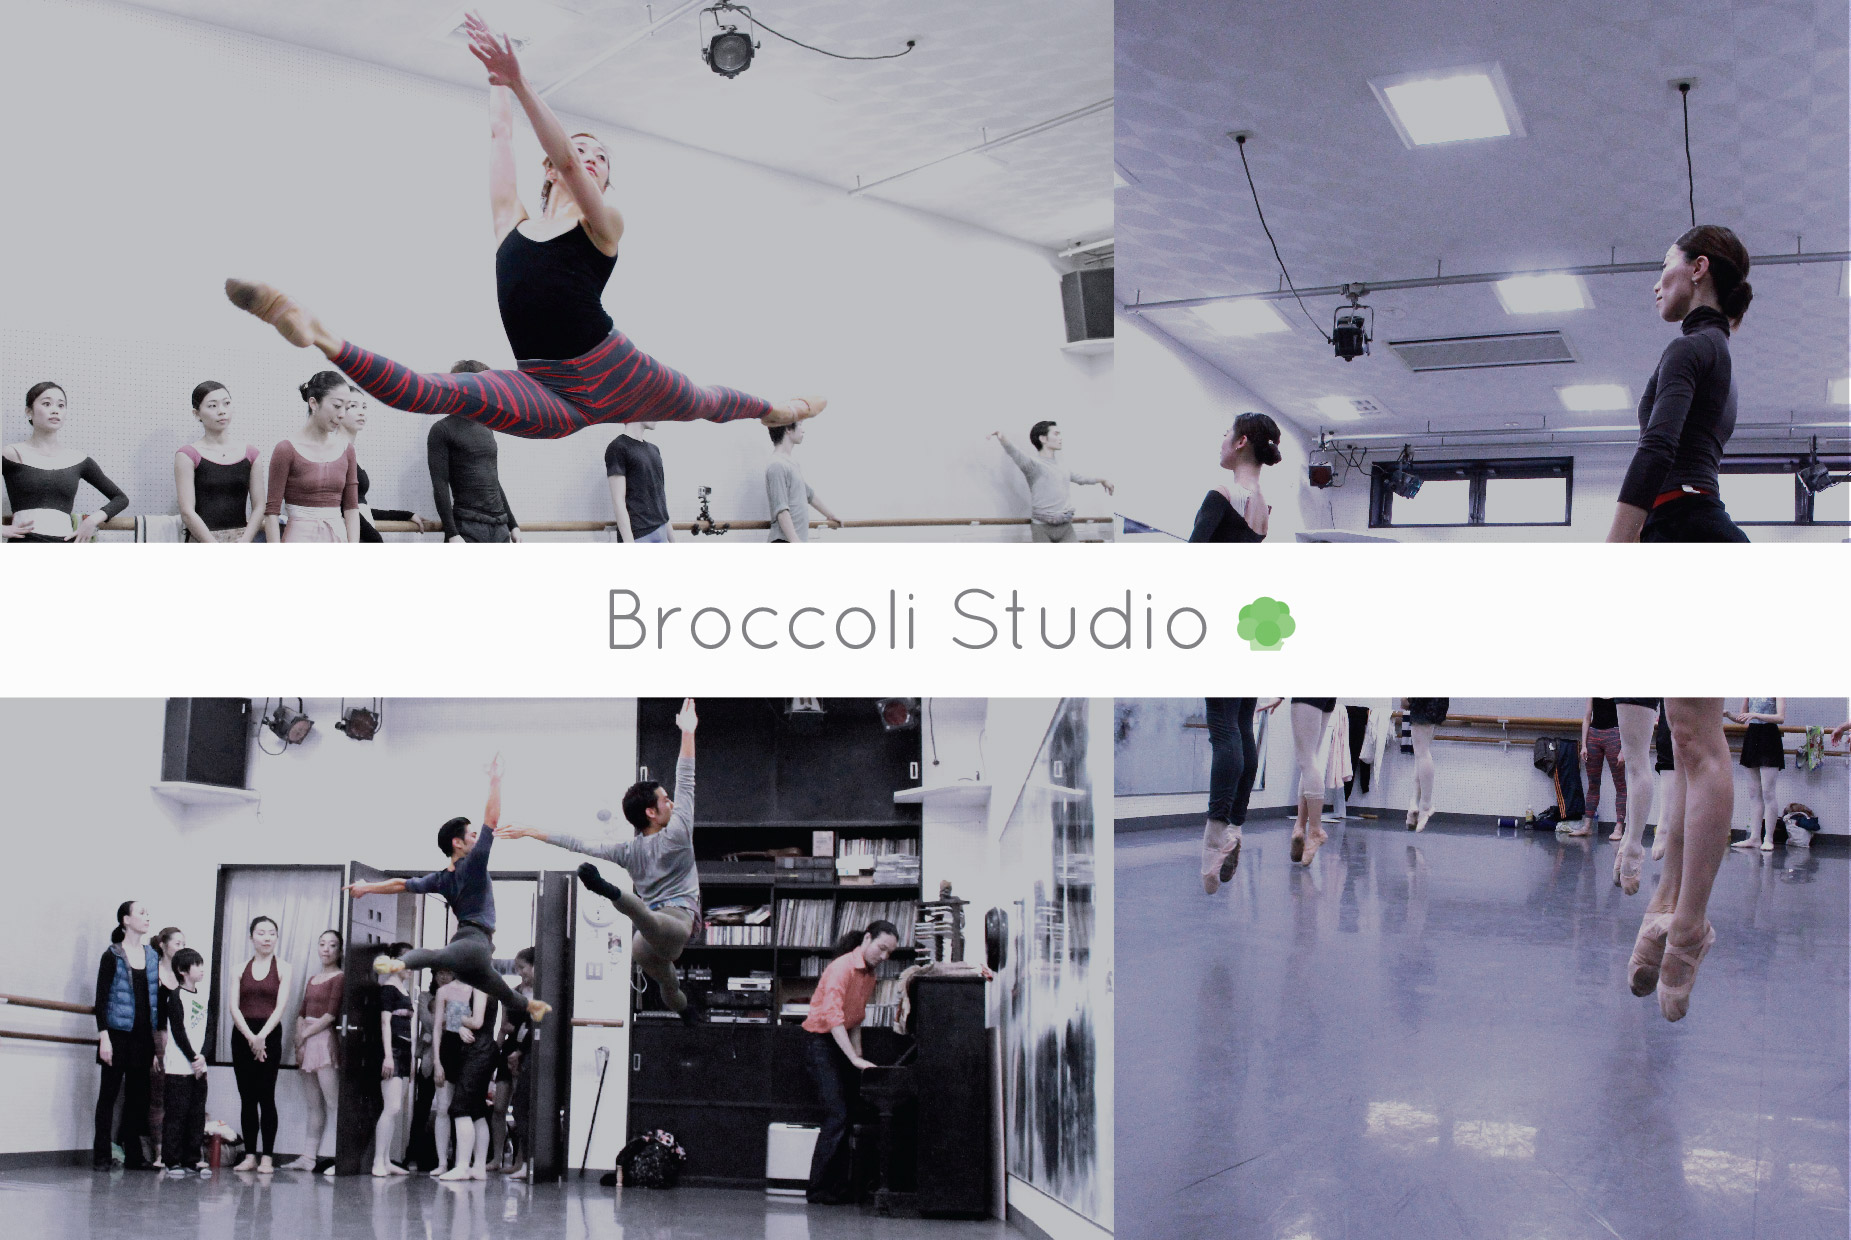 Broccoli Studio